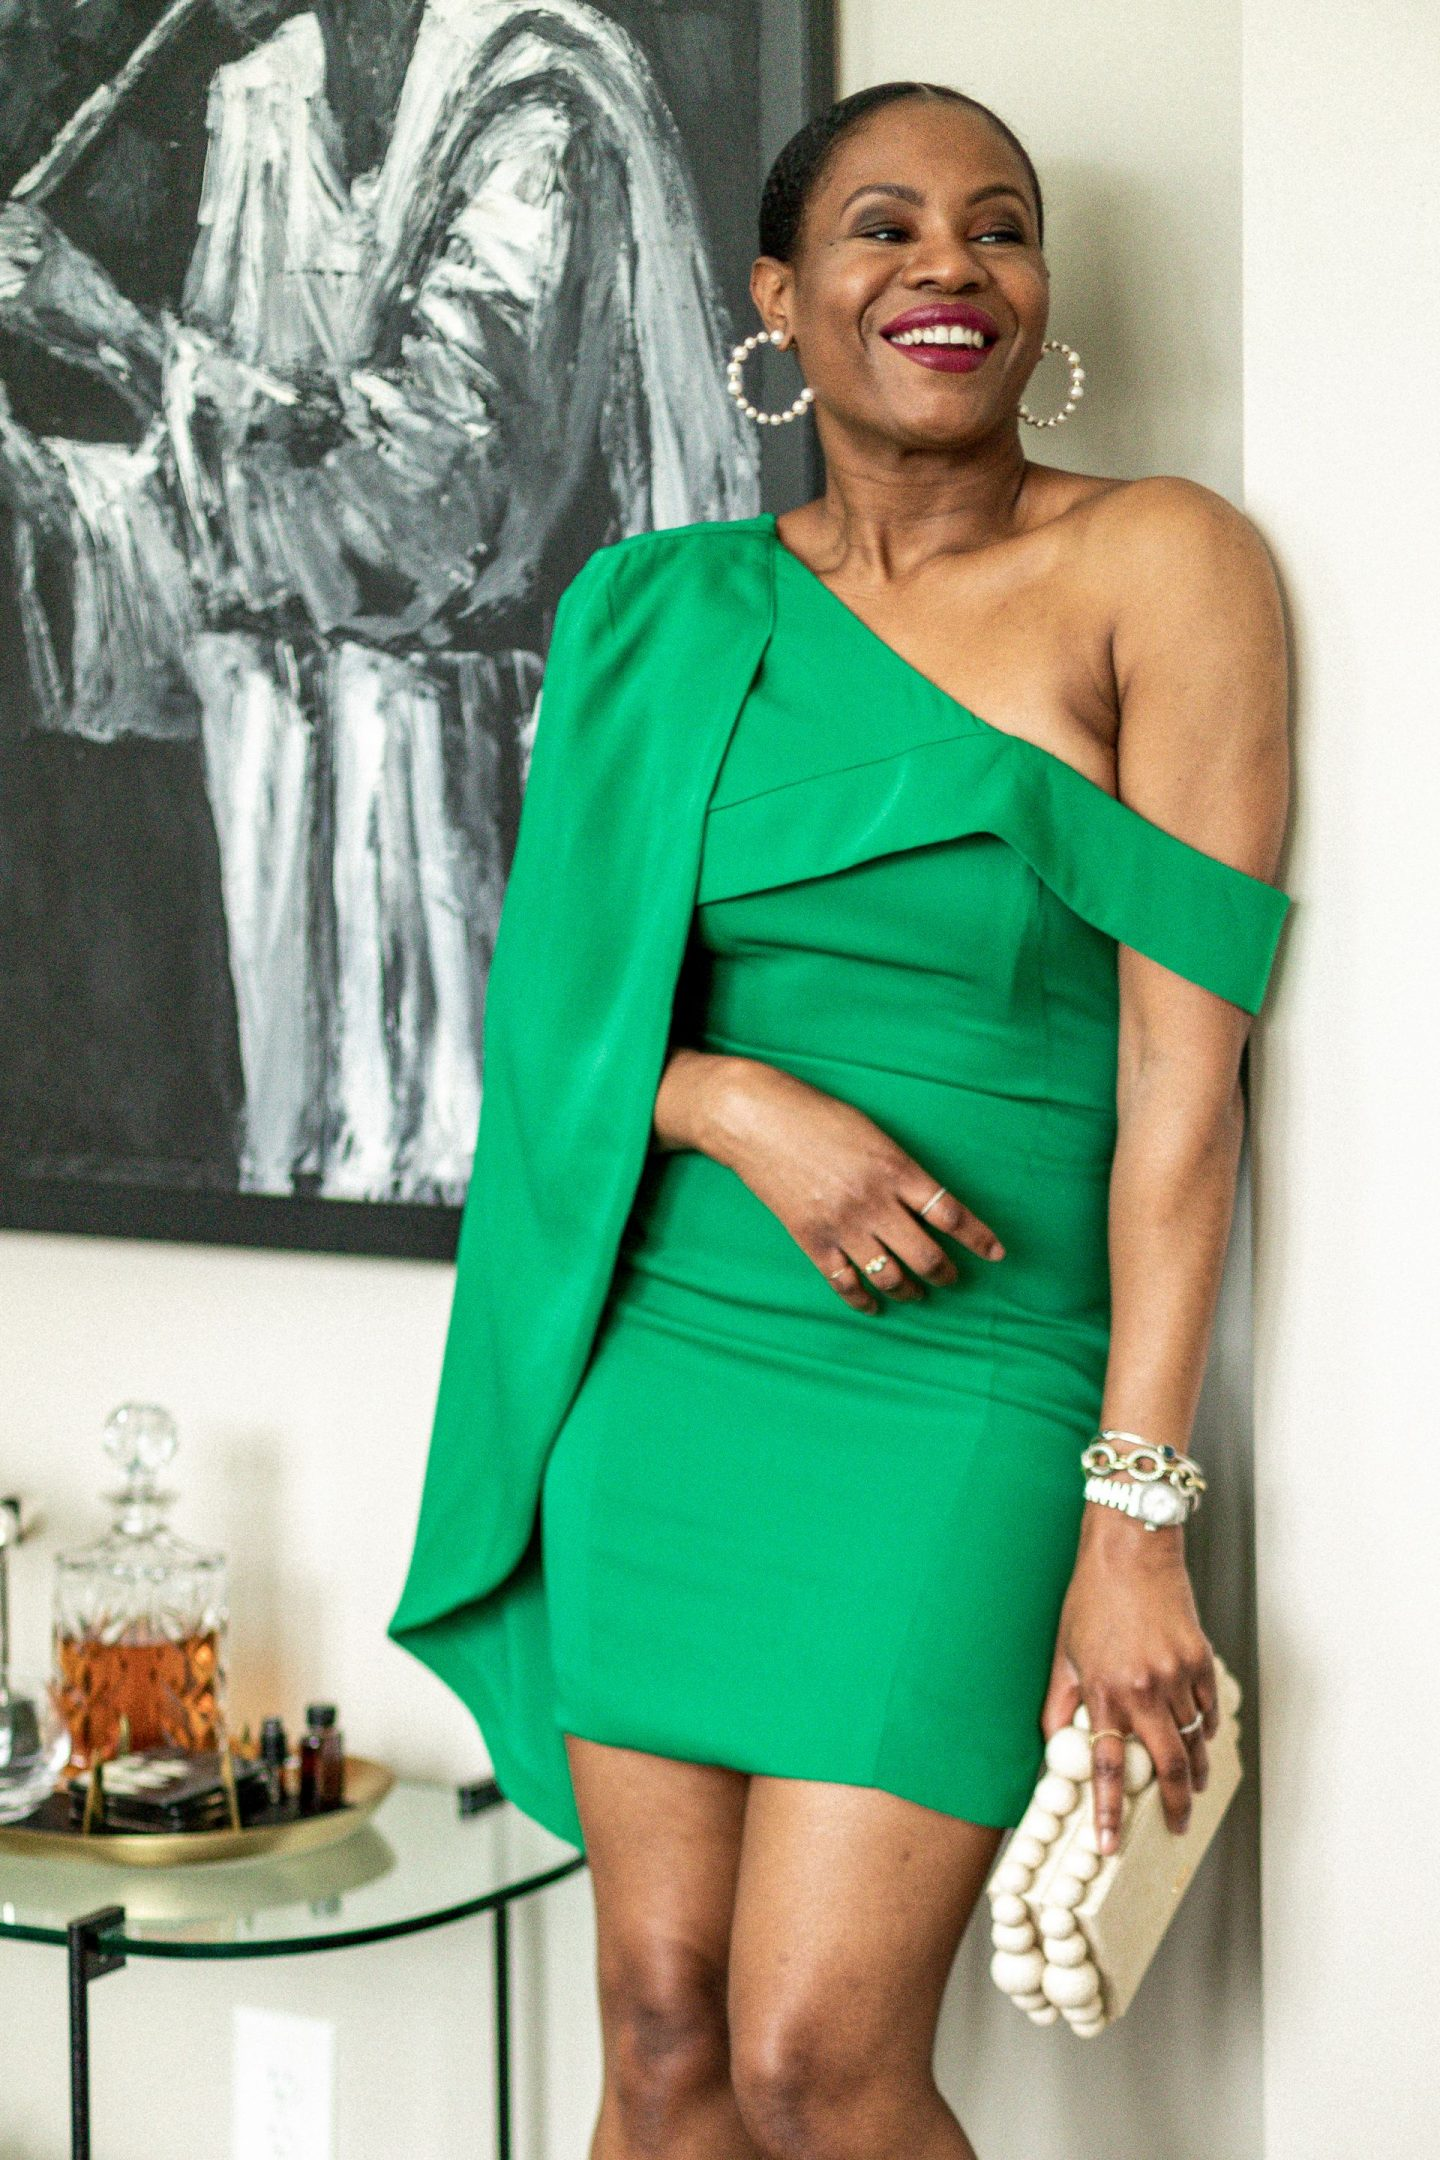 atlanta blogger wearing a green one sleeve dress for a holiday party, holiday parties, holiday dresses, zoom party